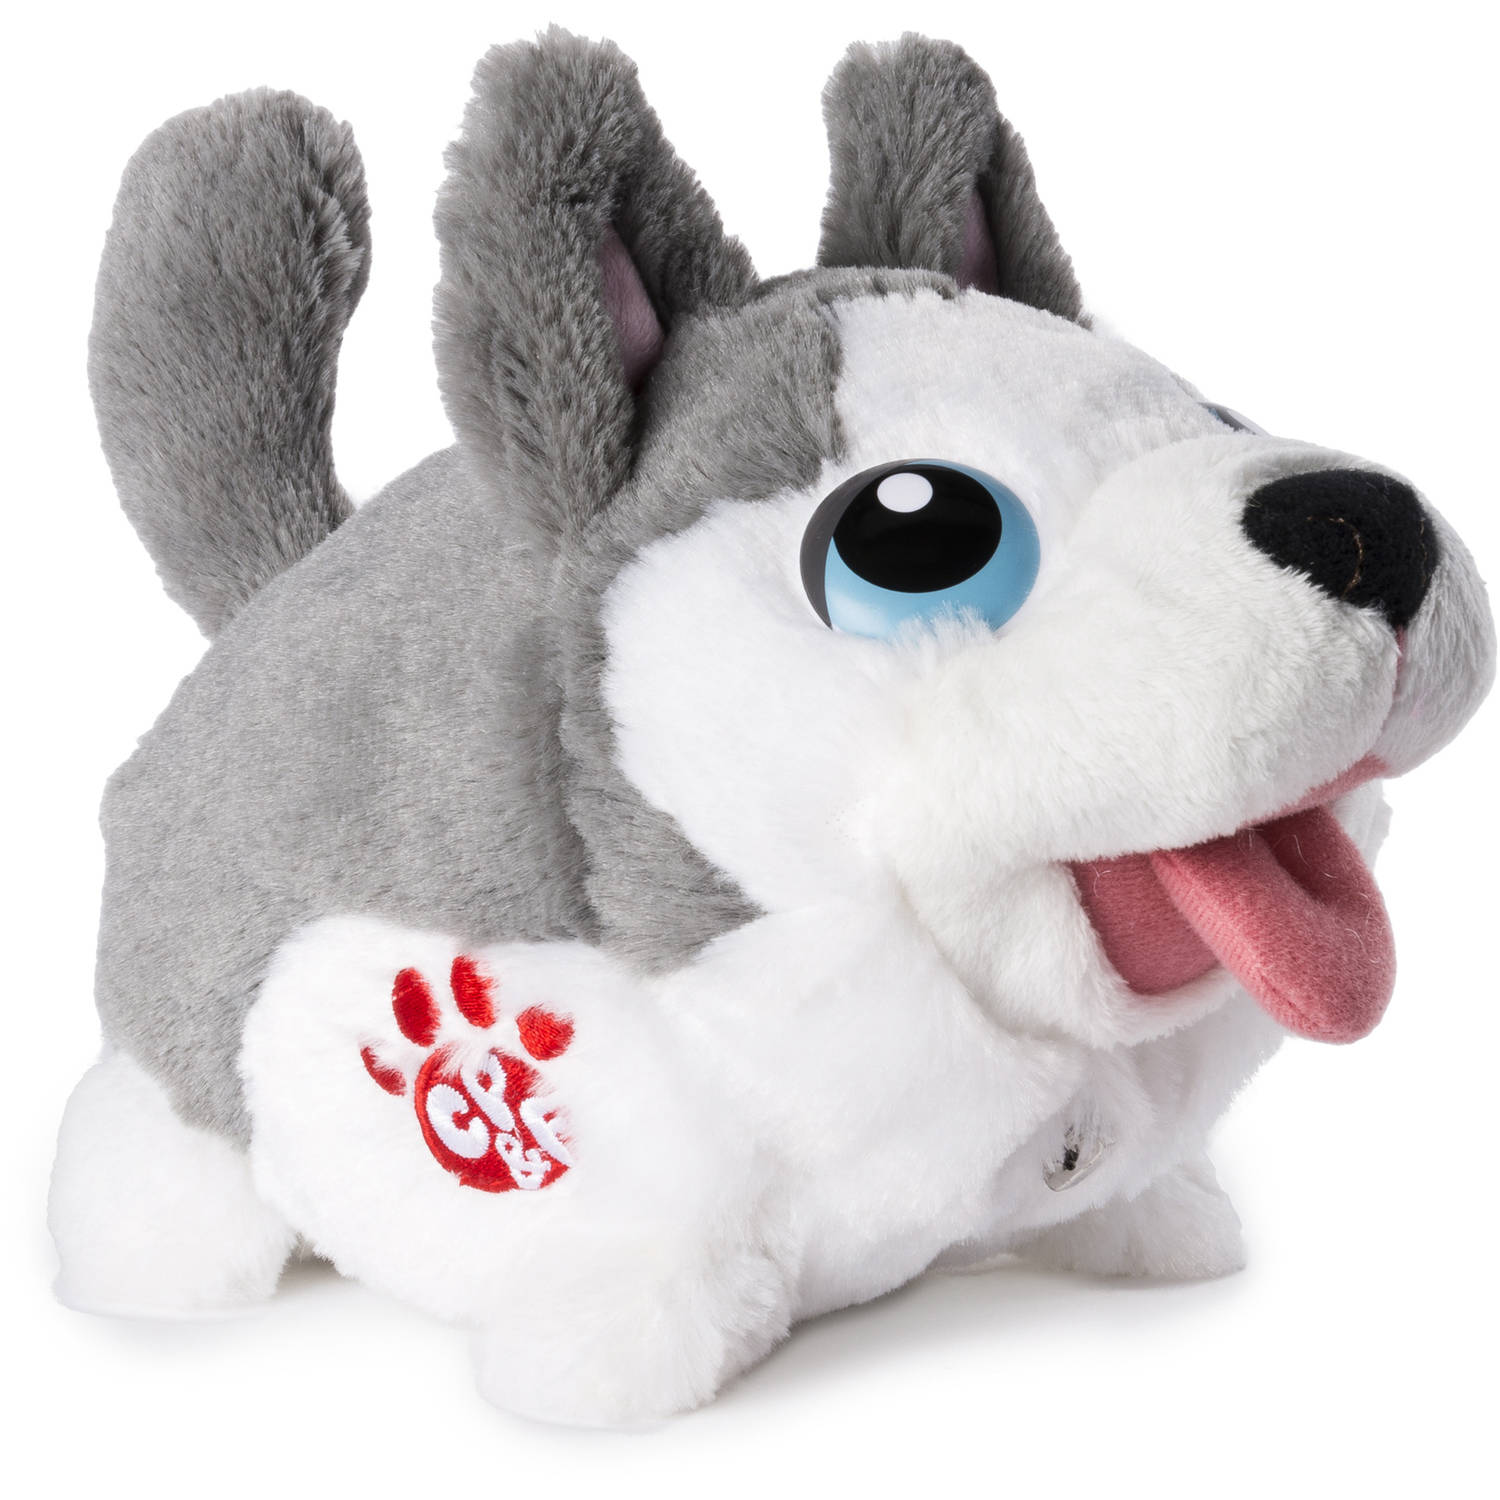 Chubby Puppies & Friends Bumbling Puppies Plush, Husky